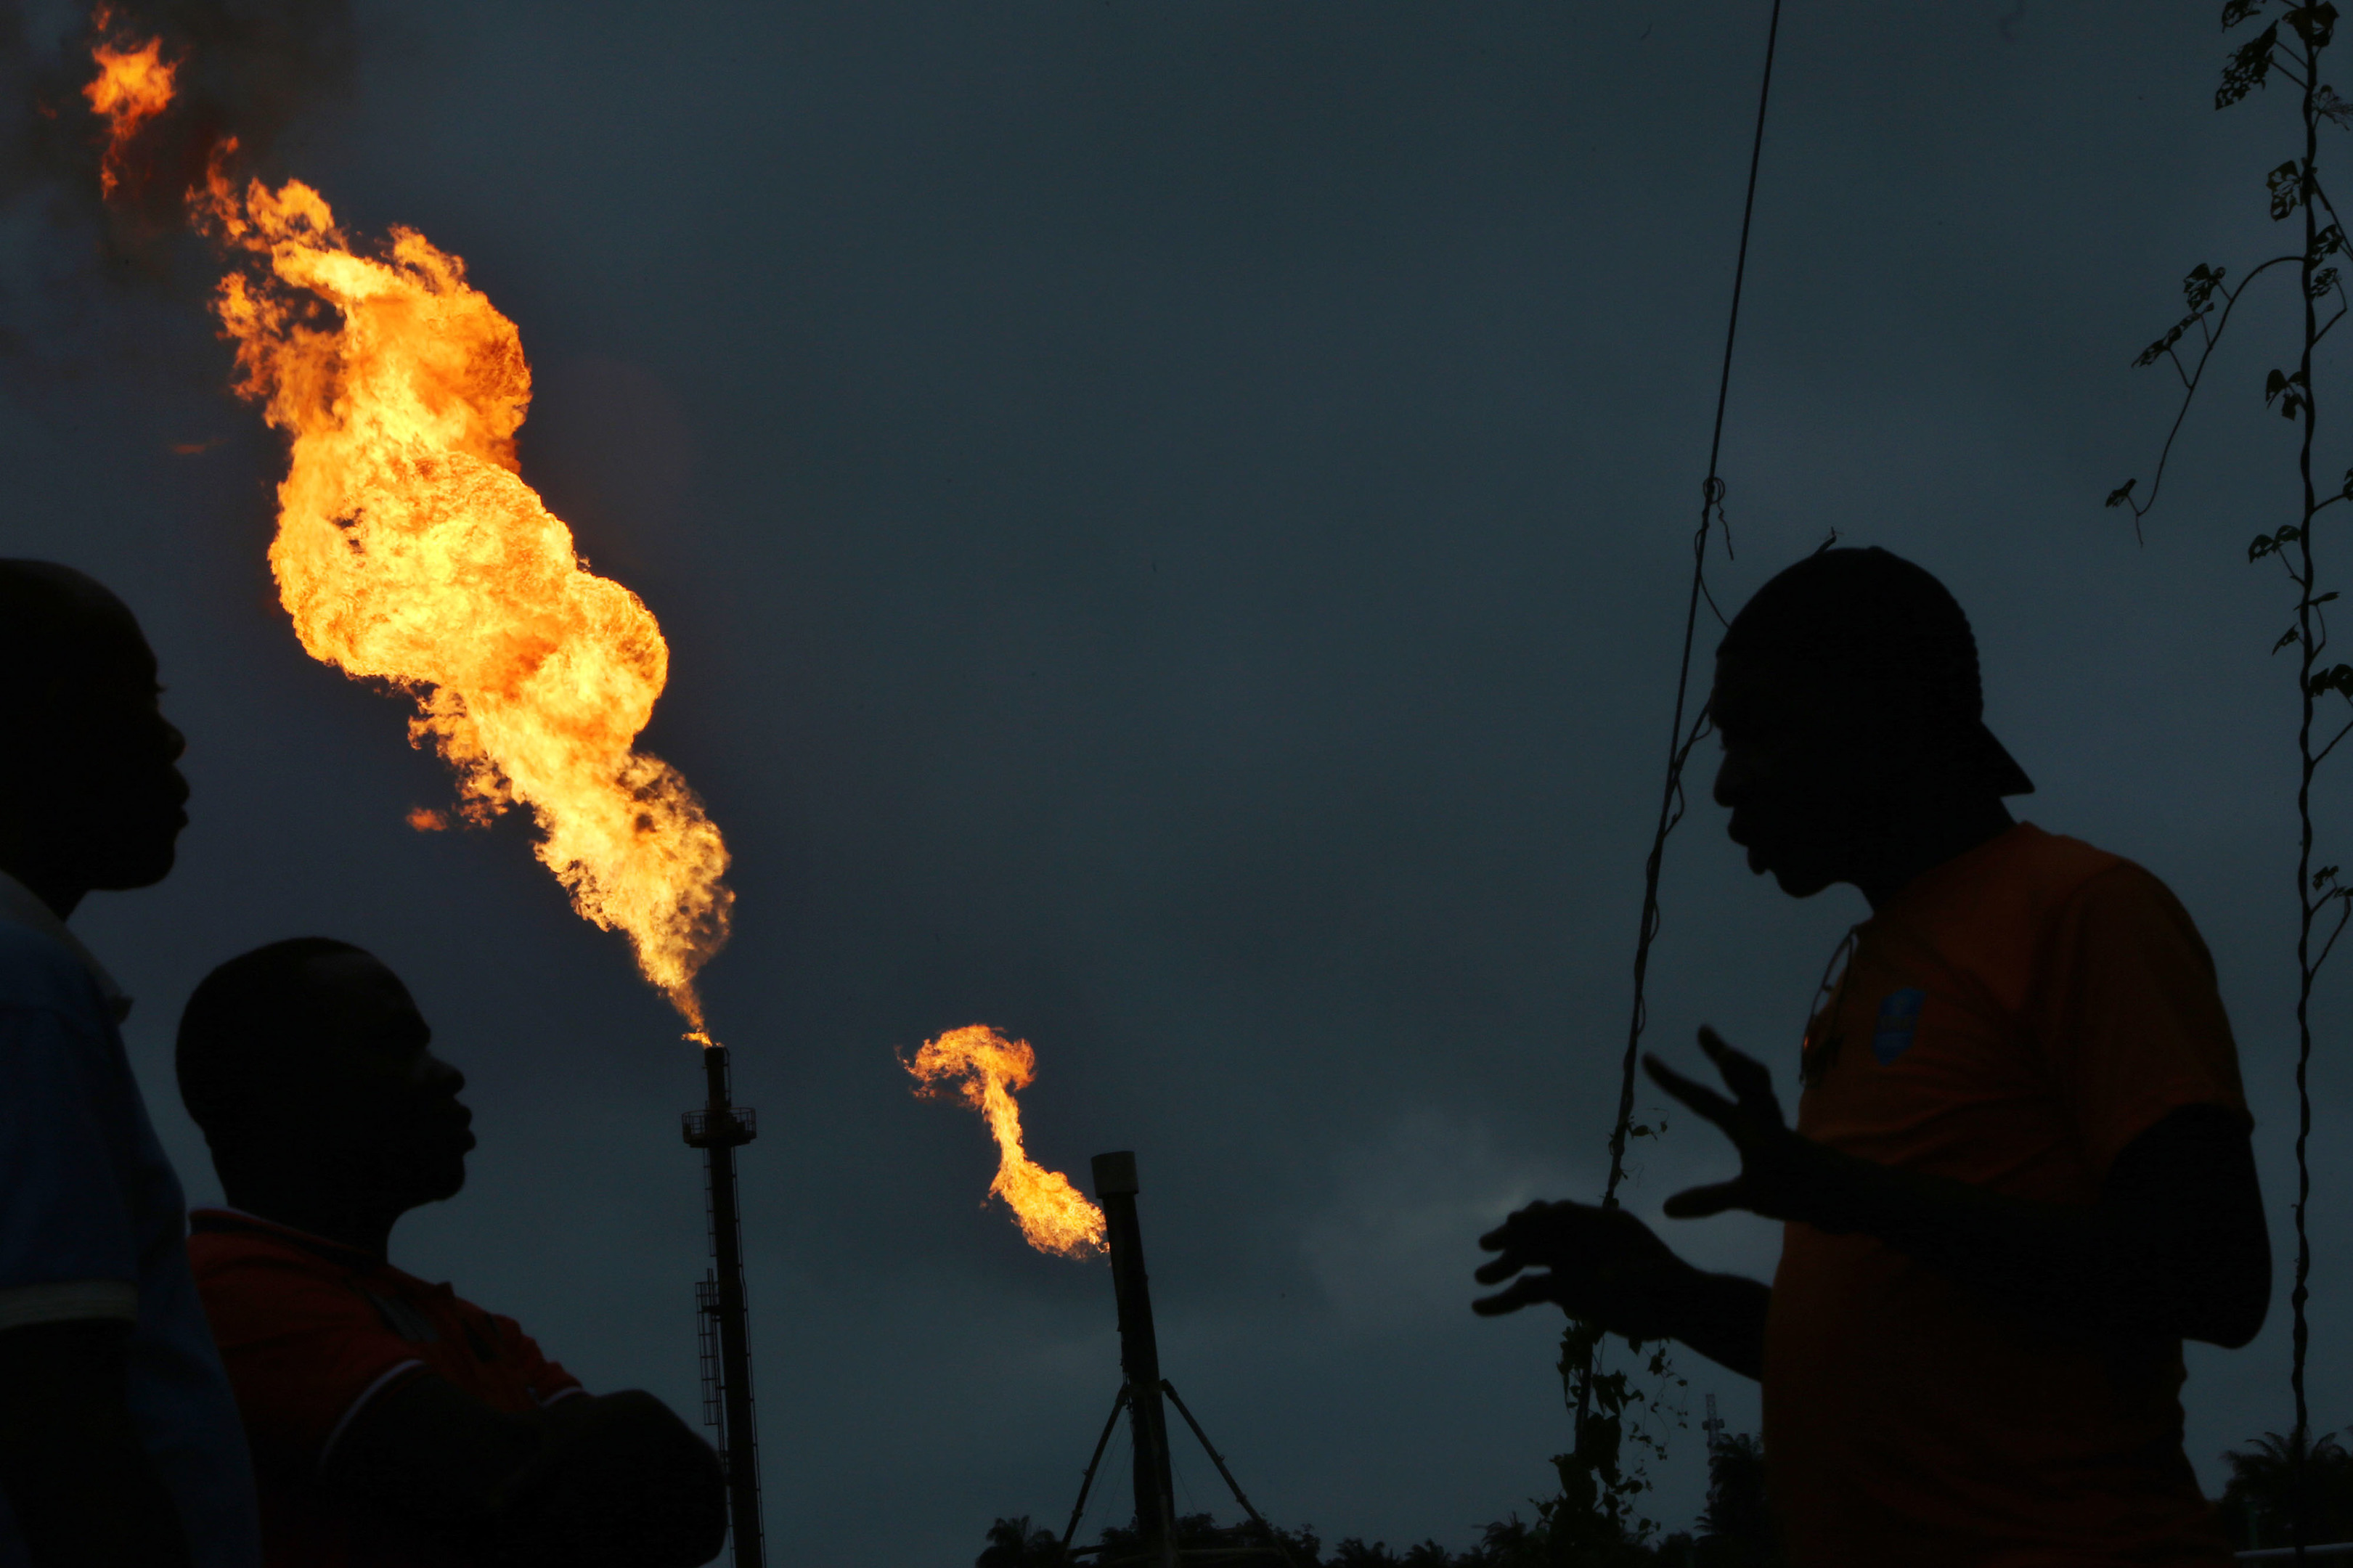 Gas flares burn from pipes at an oil flow station operated by Nigerian Agip Oil Co. Ltd. (NAOC), a division of Eni SpA, in Idu, Rivers State, Nigeria, on Monday, Sept. 28, 2015.  Photographer: George Osodi/Bloomberg